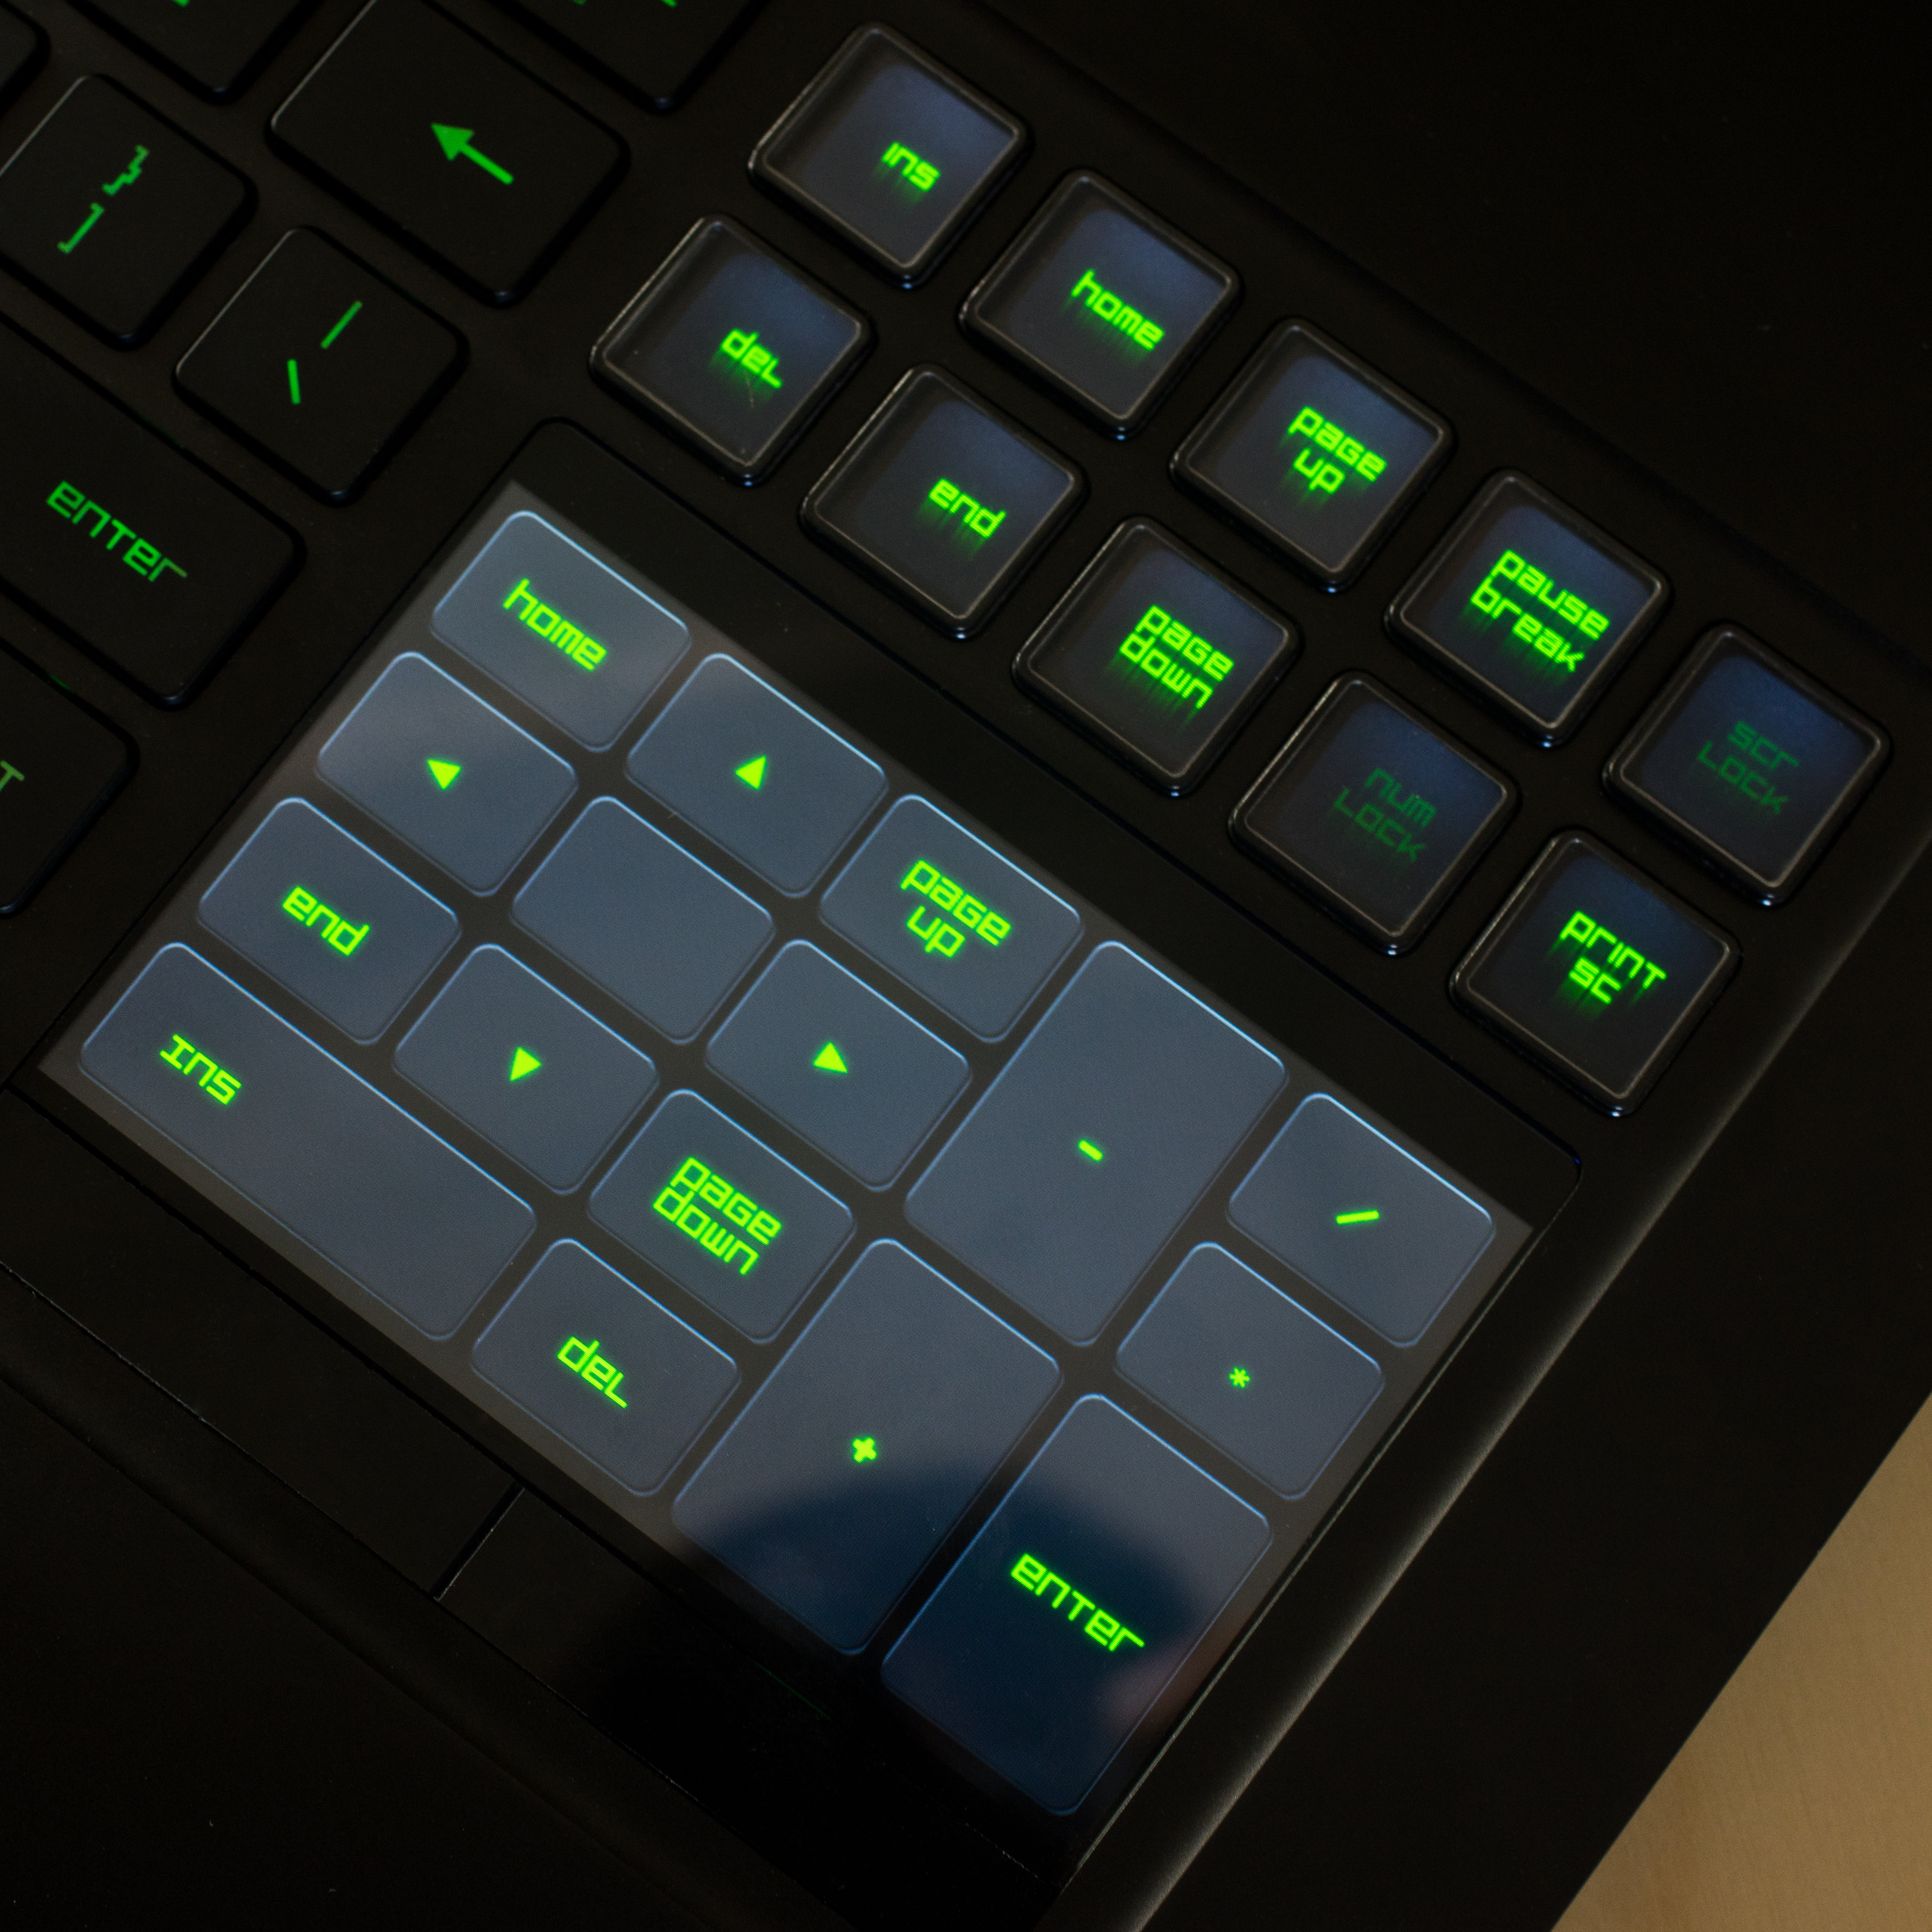 A close-up of the Razer Blade Pro's touchpad used as a number pad.